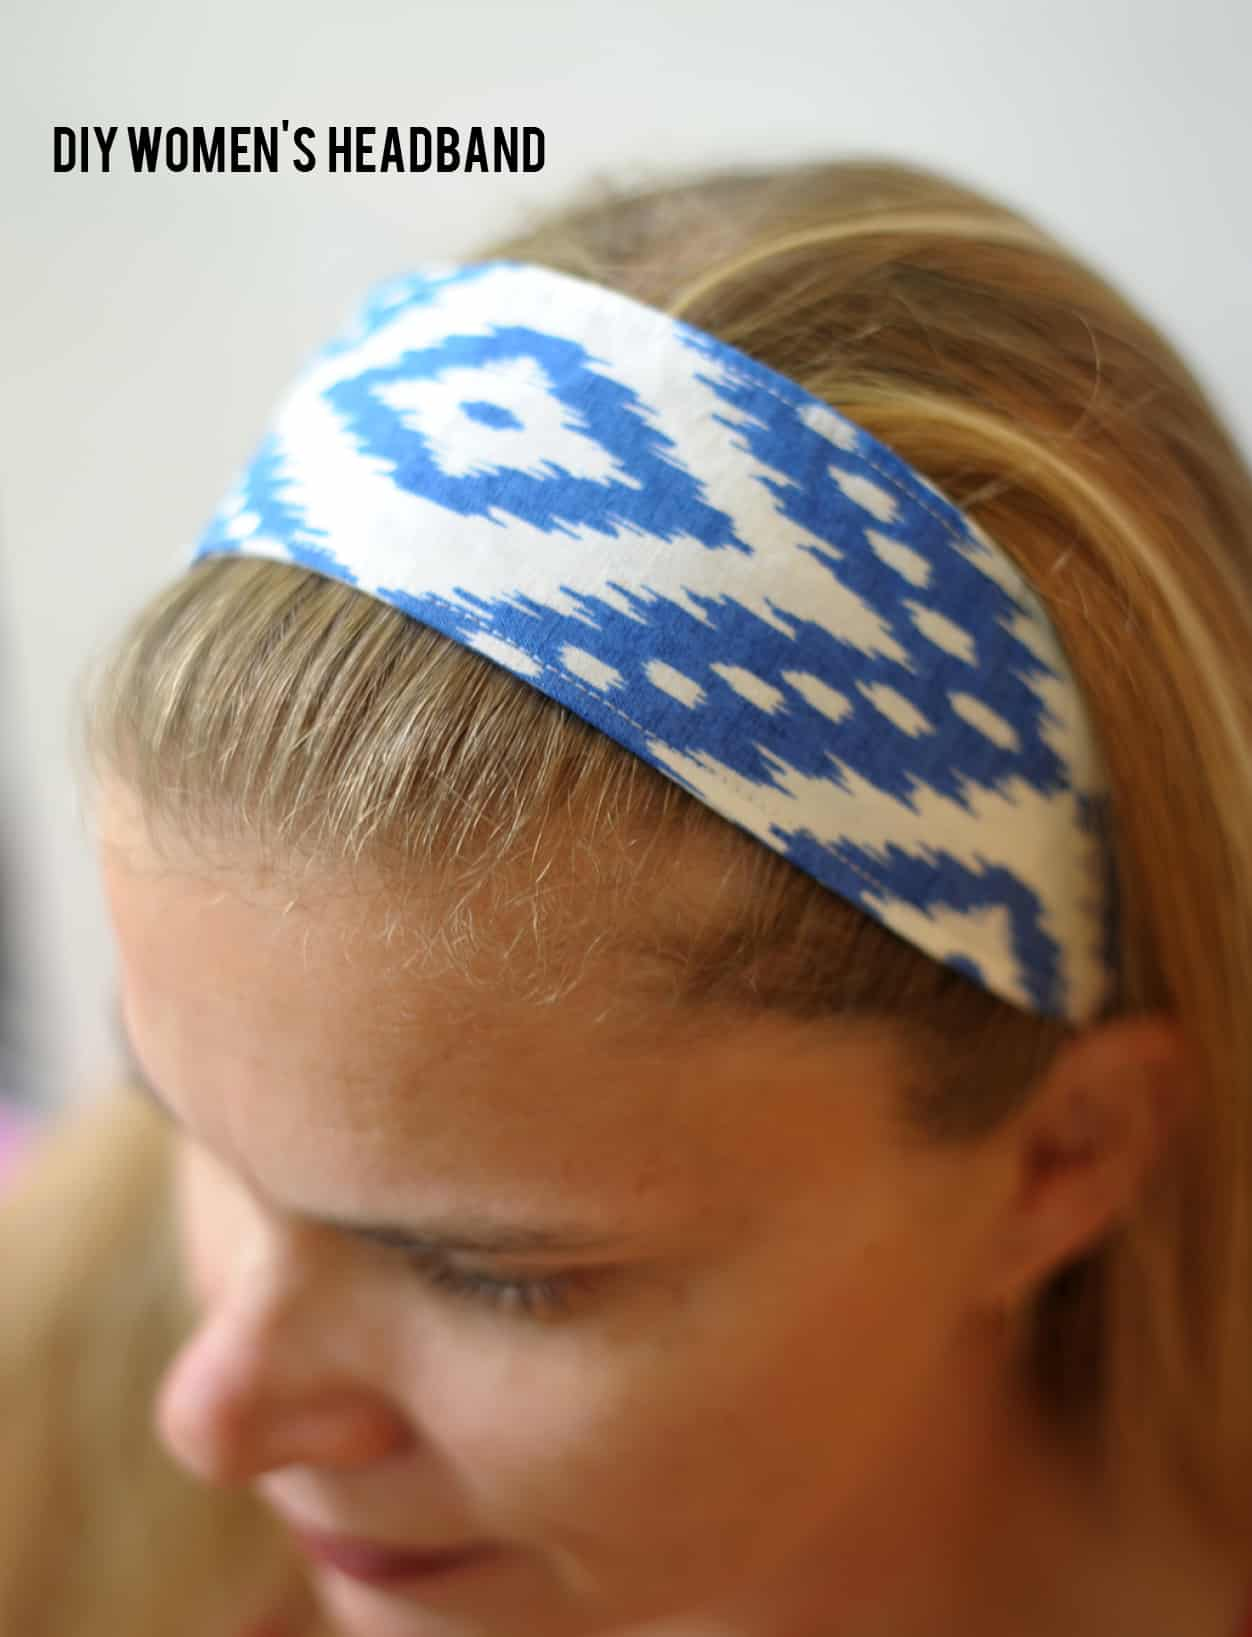 DIY-headband-1-main